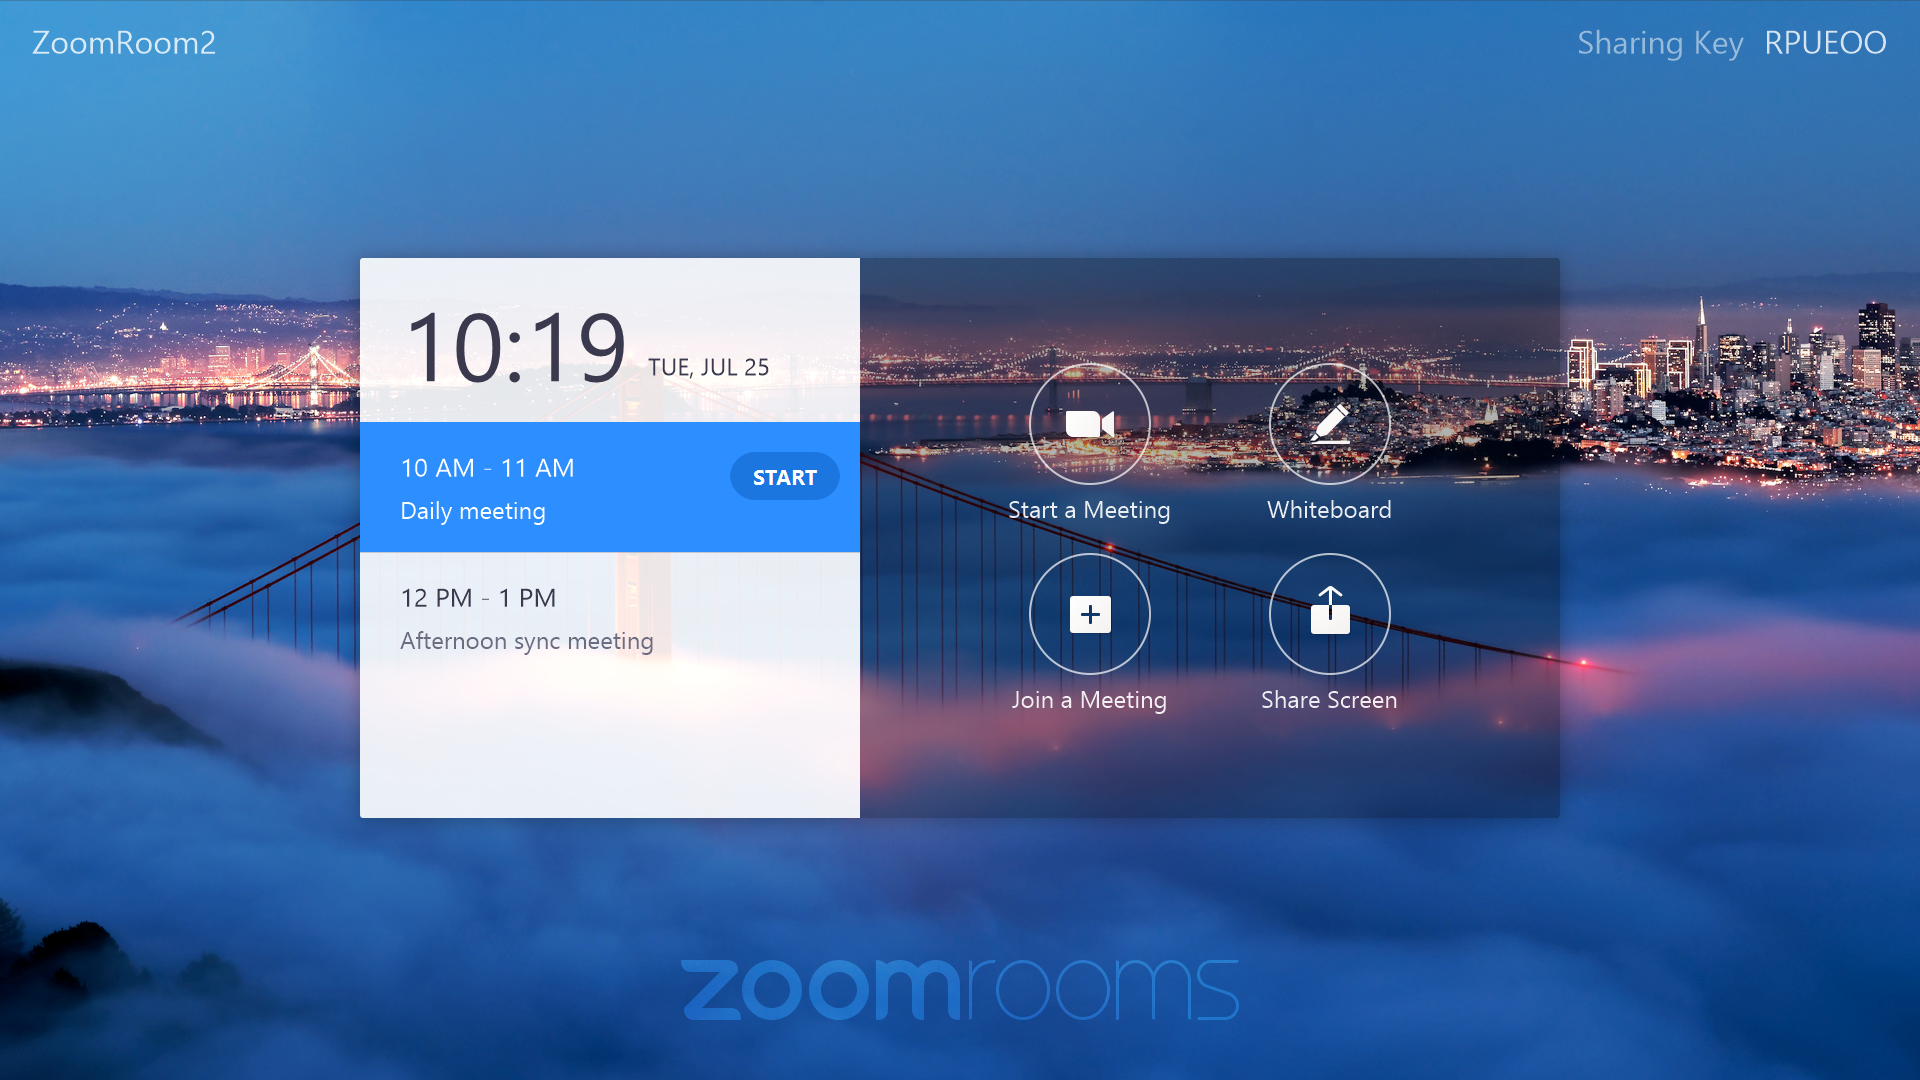 Zoom is Killing It! Gartner Places Zoom as a Market Leader Alongside Cisco and Microsoft